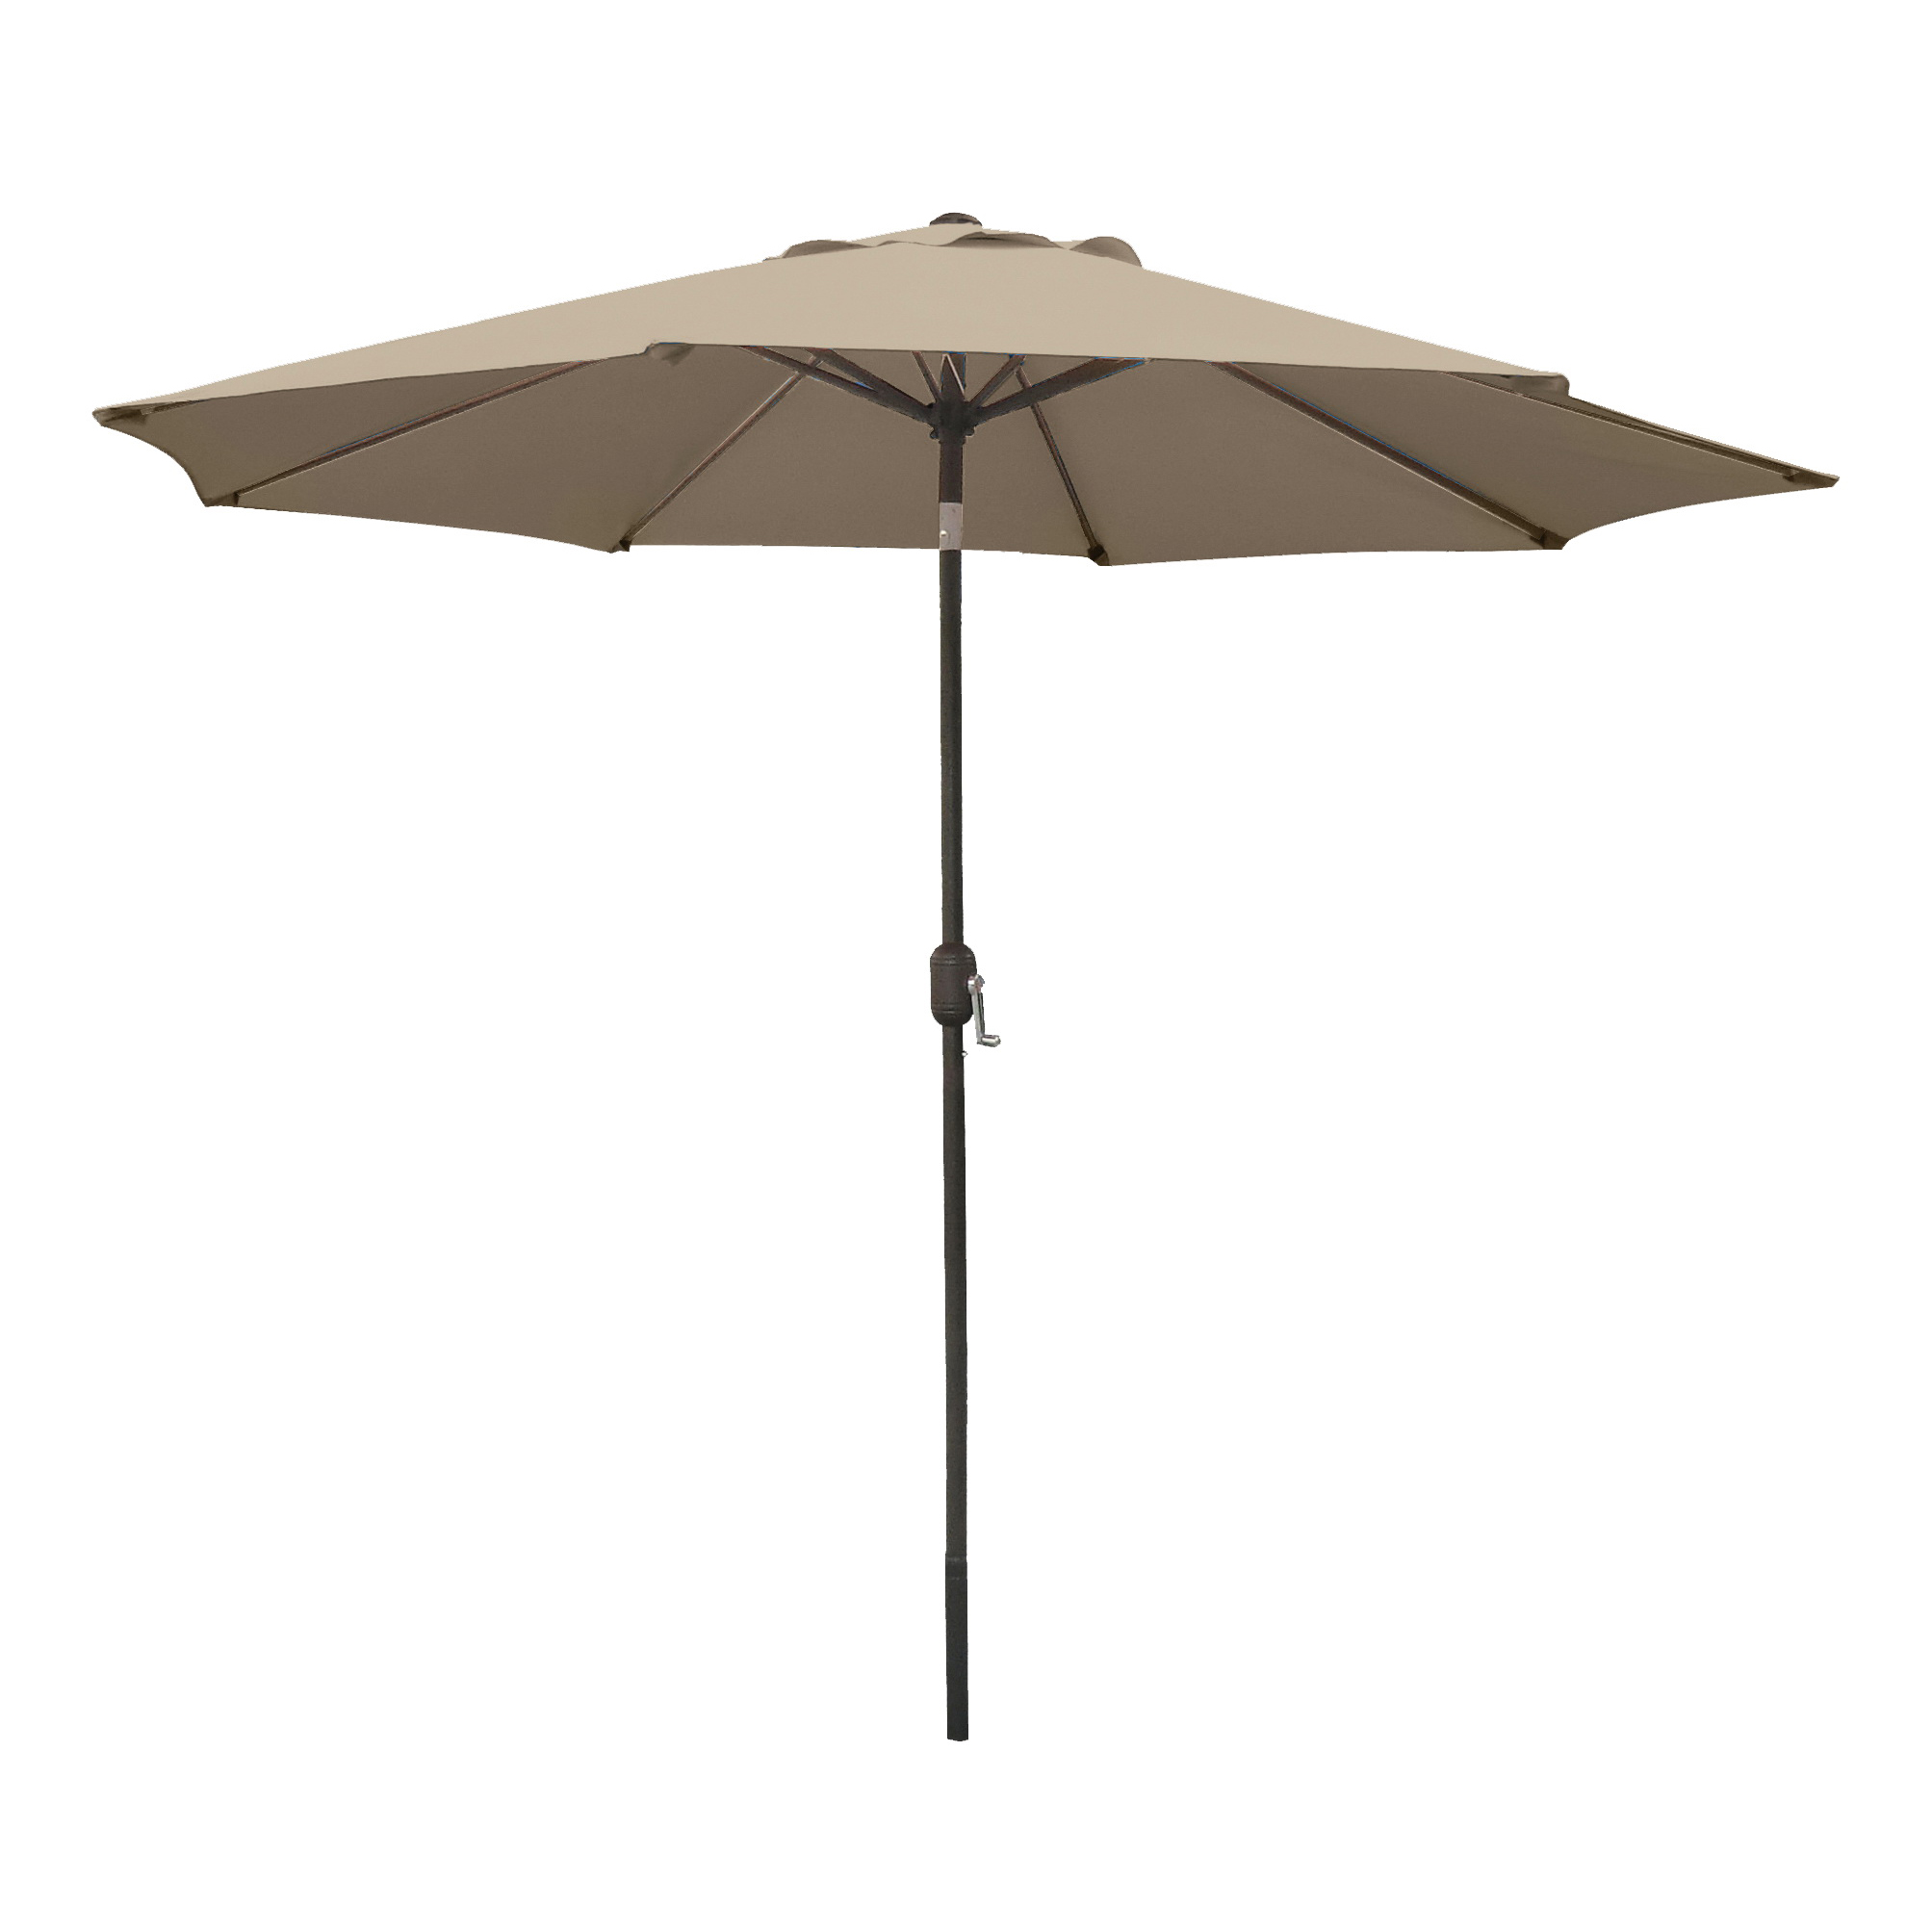 Picture of Seasonal Trends 60036 Crank Umbrella, 92.9 in H, 107.9 in W Canopy, 107.9 in L Canopy, Round Canopy, Steel Frame